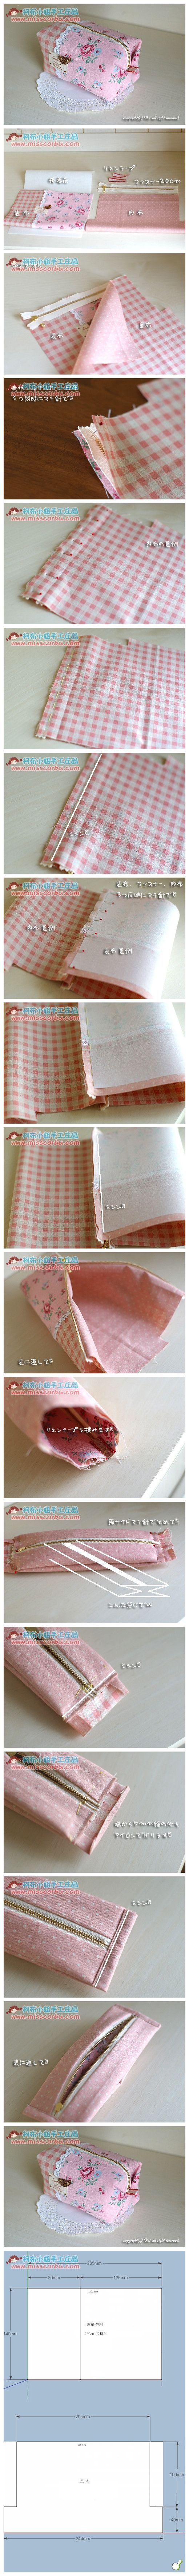 Surprise DIY: small zipper purse for change, gifts... I don't know, but it's cute.